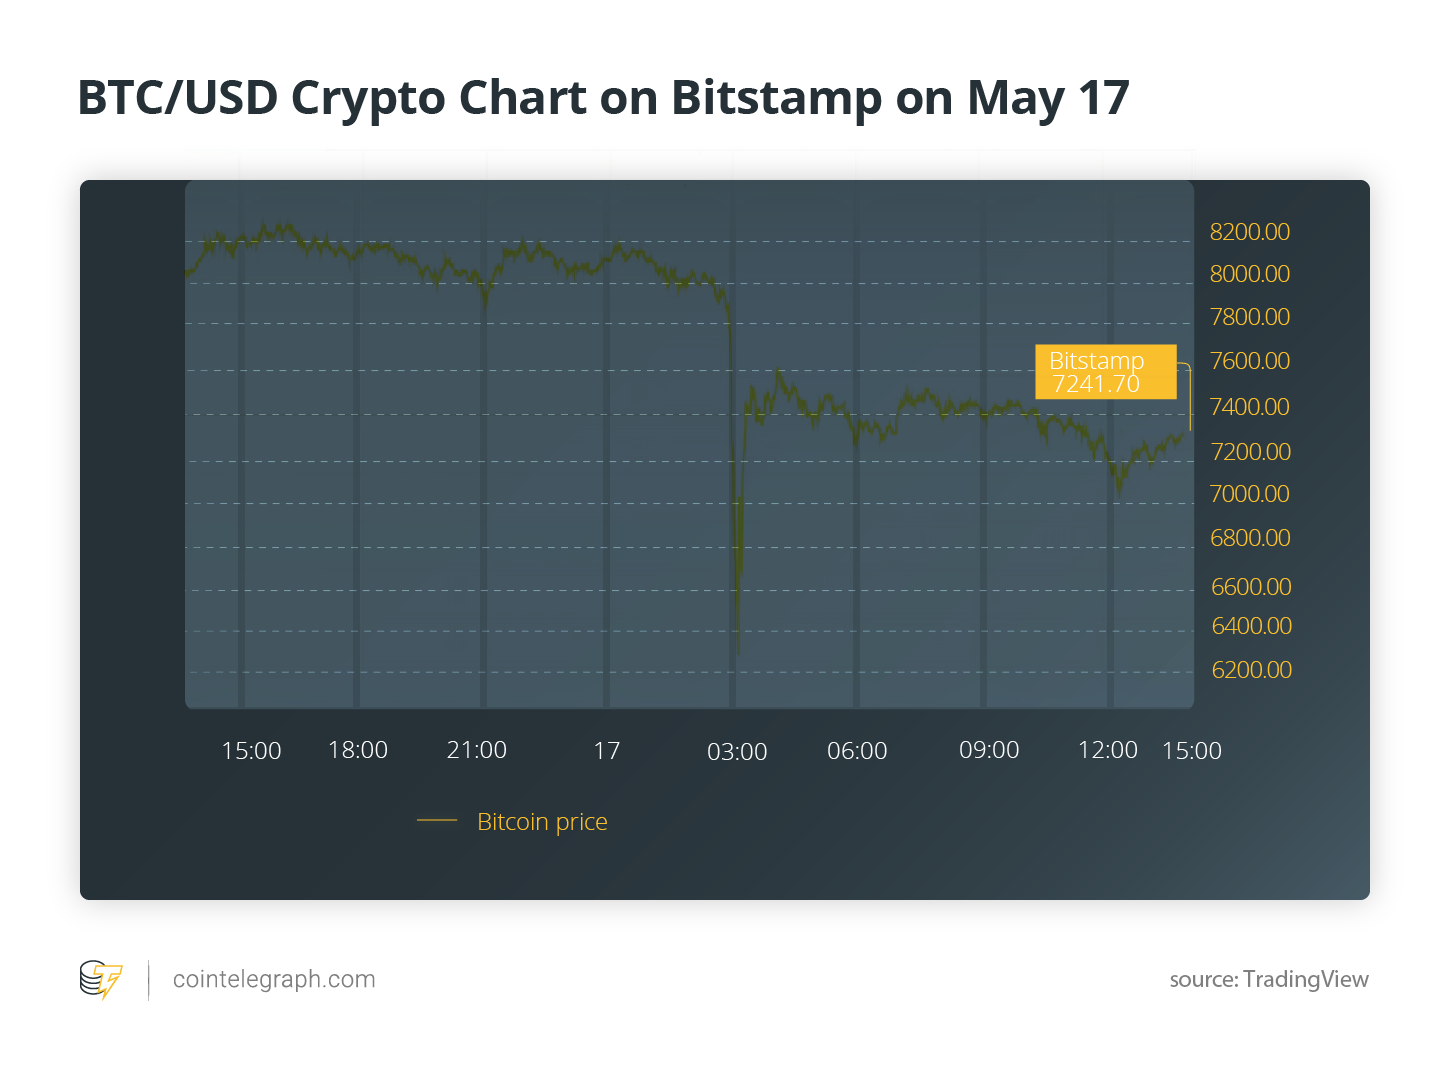 BTC/USD Krypto-Diagramm auf Bitstamp am 17. Mai